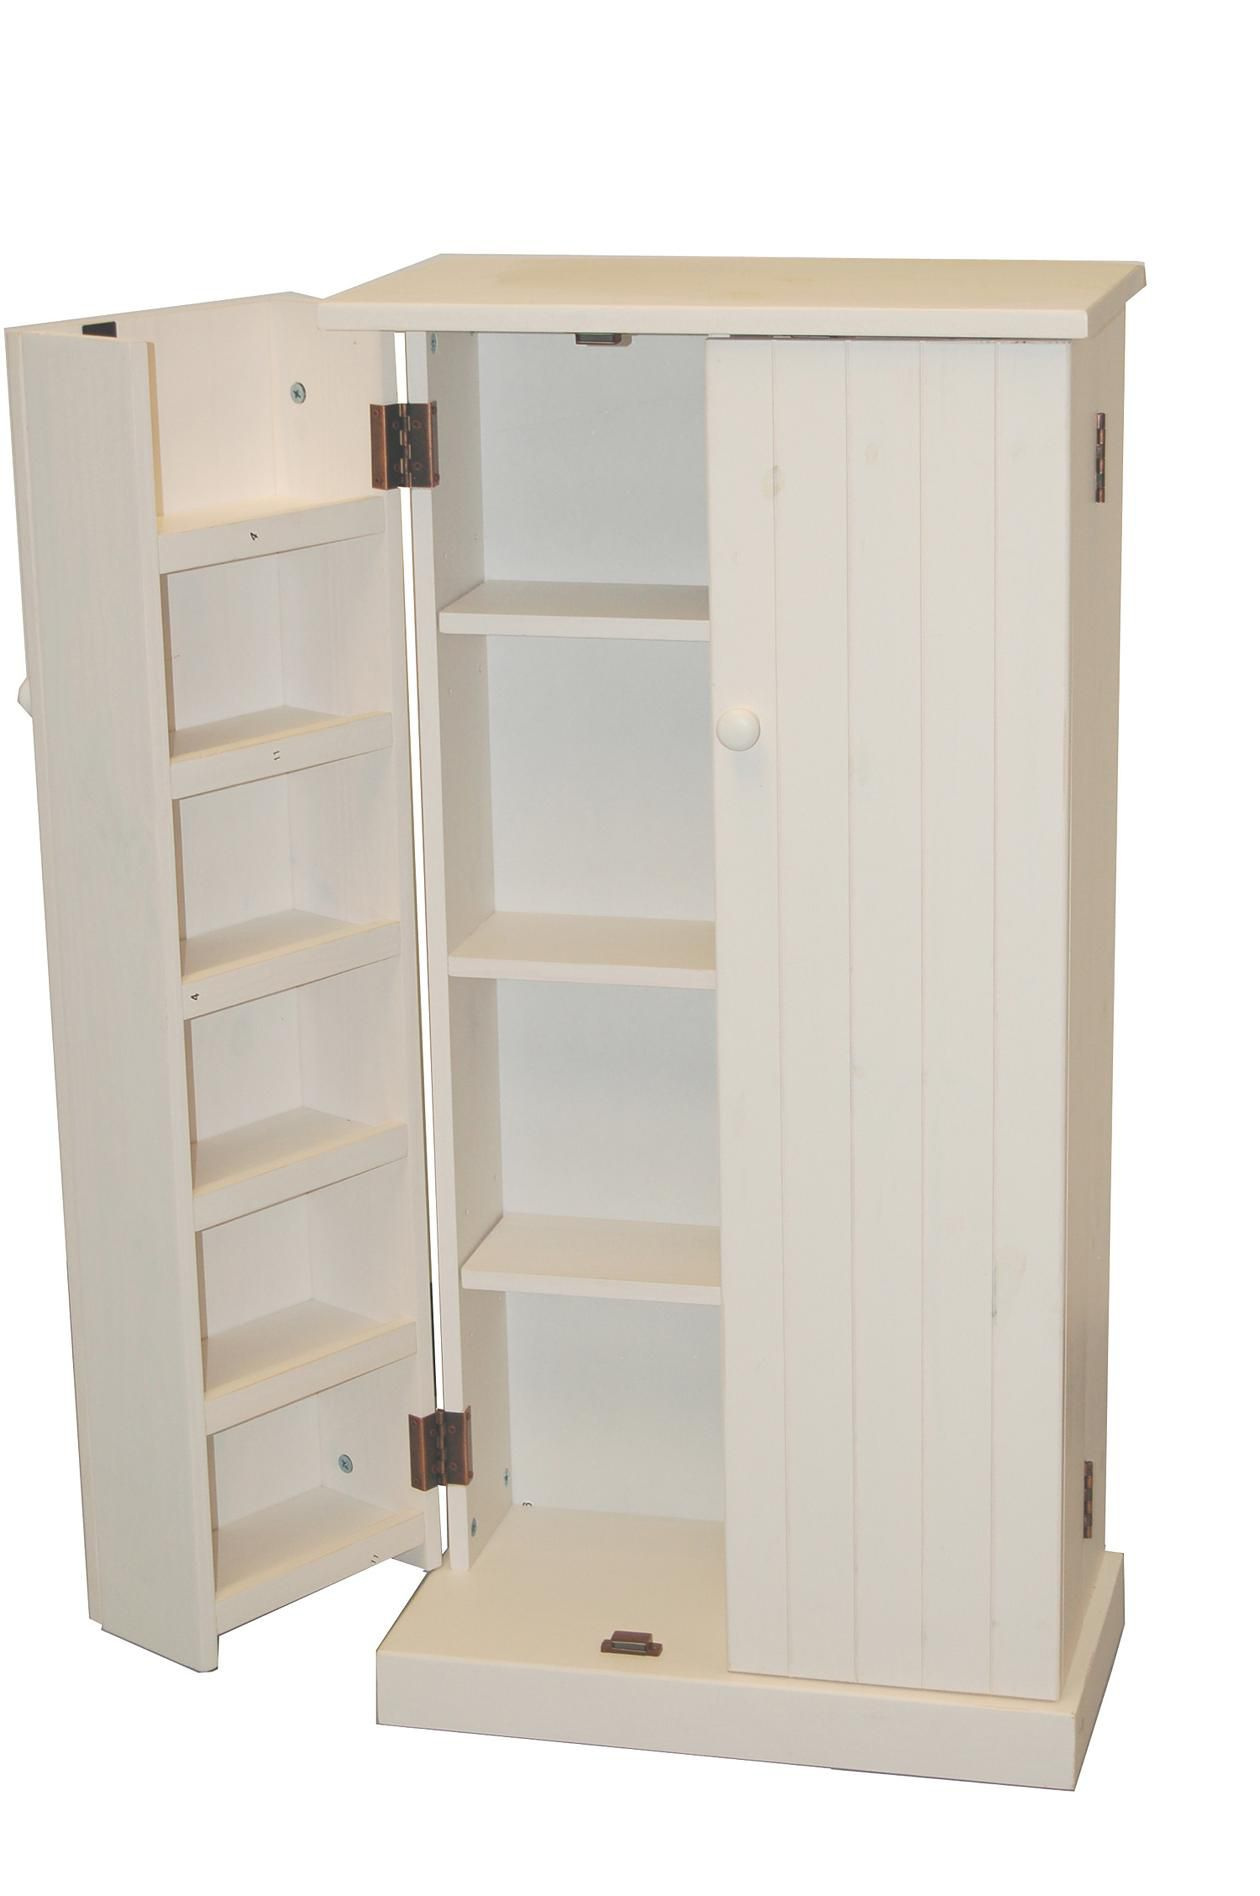 Buy Pantry Pantry Cabinet Pantry Cabinet With Microwave Shelf With